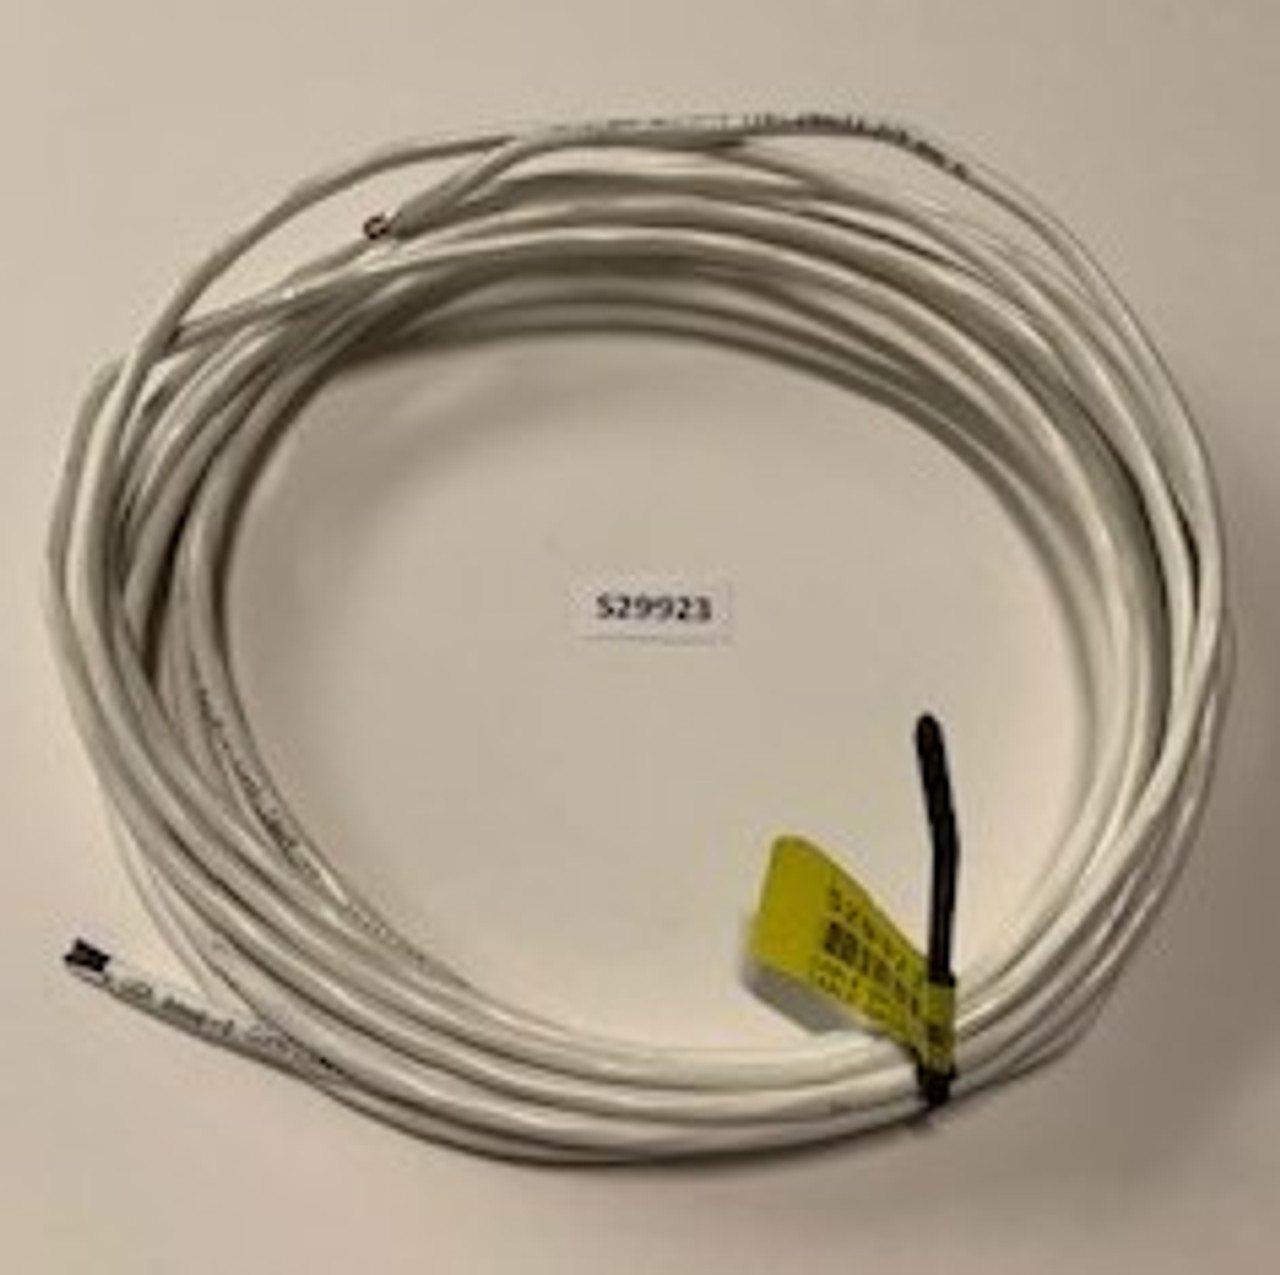 "Cable, Shielded 4/18 White 20"", Aaon, S29923"